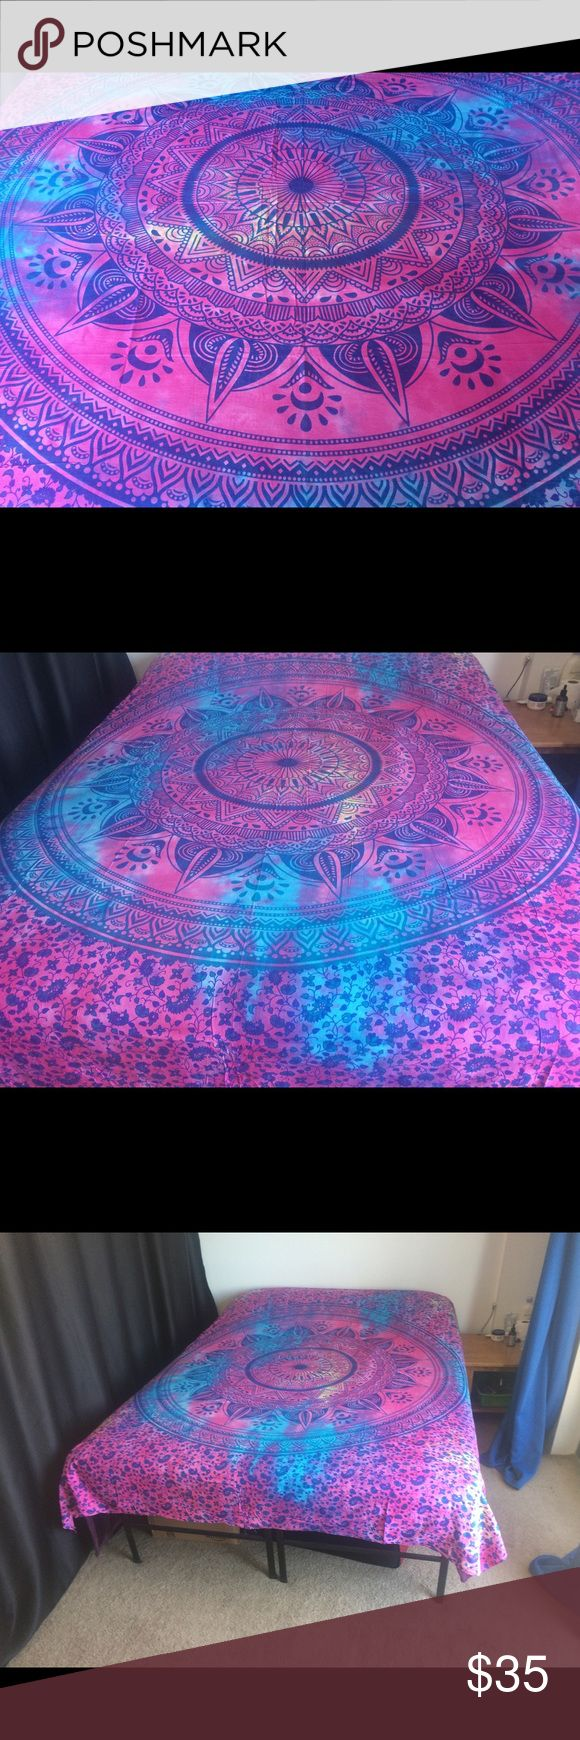 "kids Teens dorm room decor bed wall spread  Brand new.Handmade with natural dyes.  Uses: bed spread, couch spread, curtains, wallhangings, Celling decor, beach mat, picnic mat, table cloth, yoga & meditation.  Size: 90"" X 84"" inch ( Queen bed)   Material;100% Cotton  Wash: cold wash    #gypsylife #tapestry #mandala #yogamat #mandala #burningman, #birthdaygift, #beachtowel #bedspread #walldecor #gift #boho #hippy #gypsy #wallhanging #yogamat #bedsheet #bedspread #bedding #  #party…"